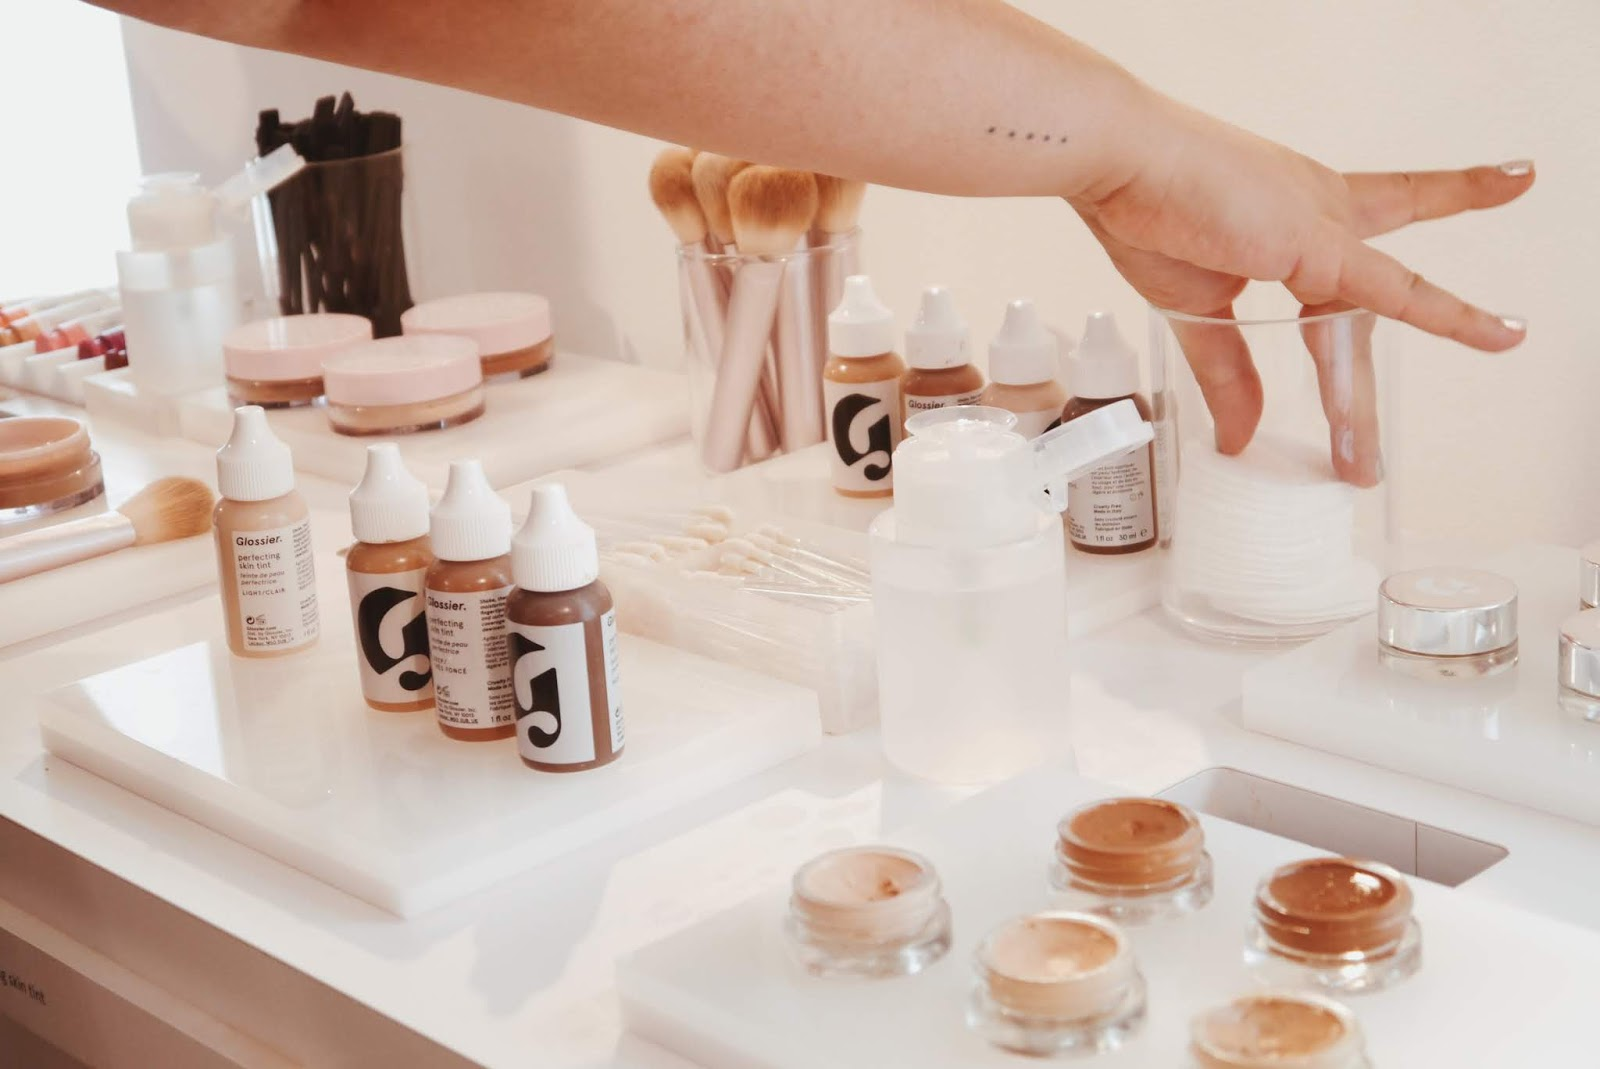 glossier showroom new york nyc noirette diary 1